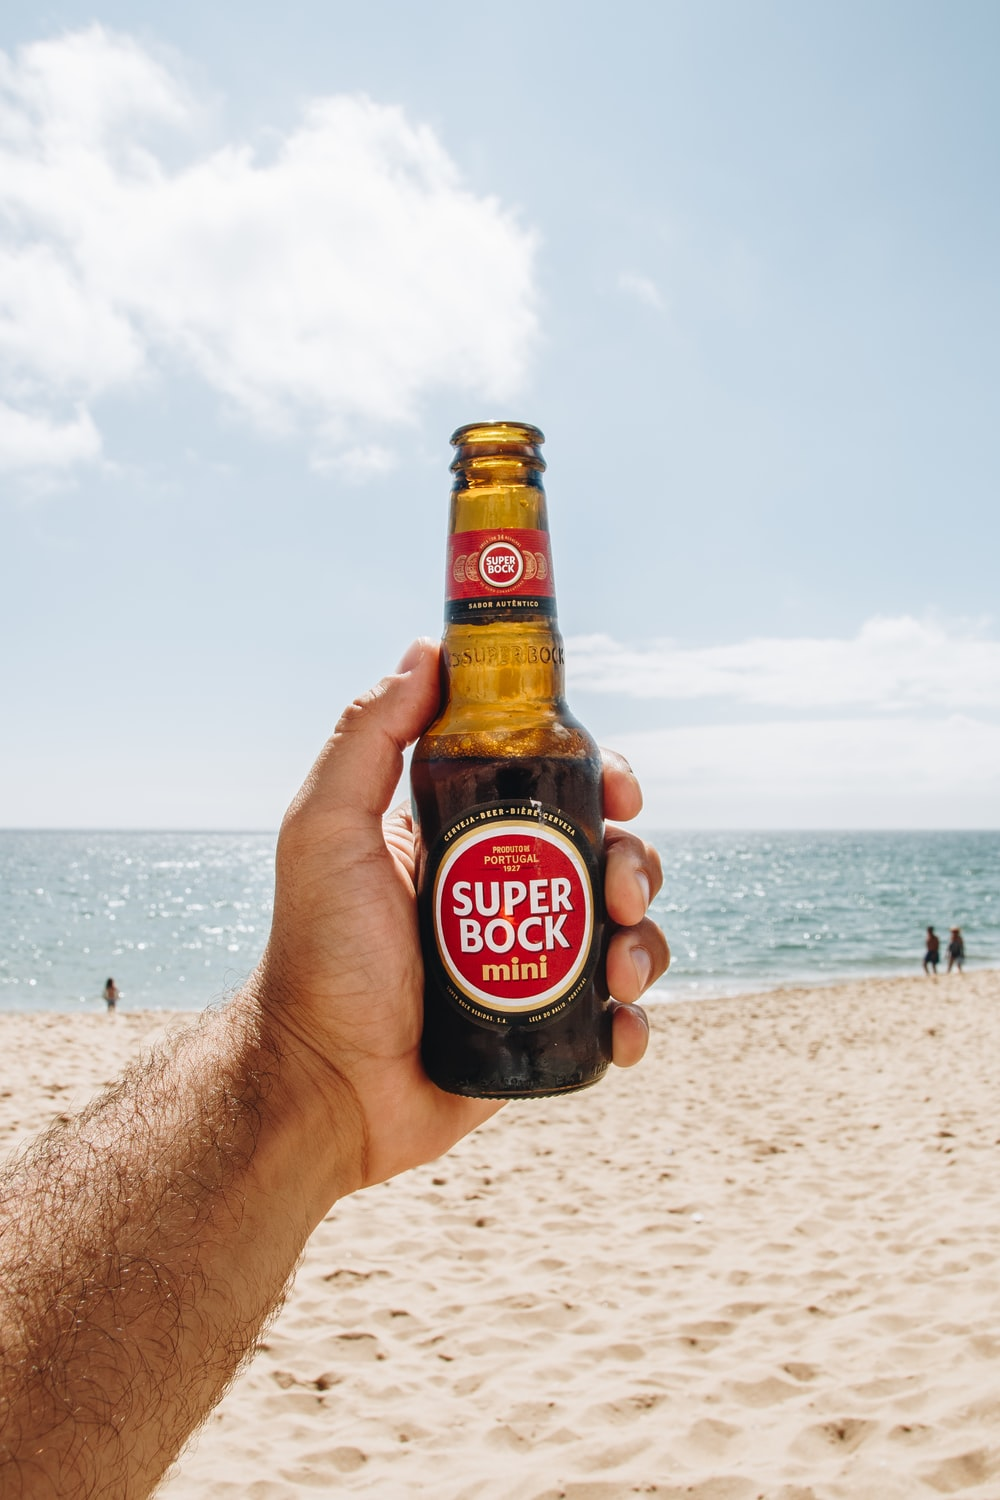 person holding opened Super Bock bottle